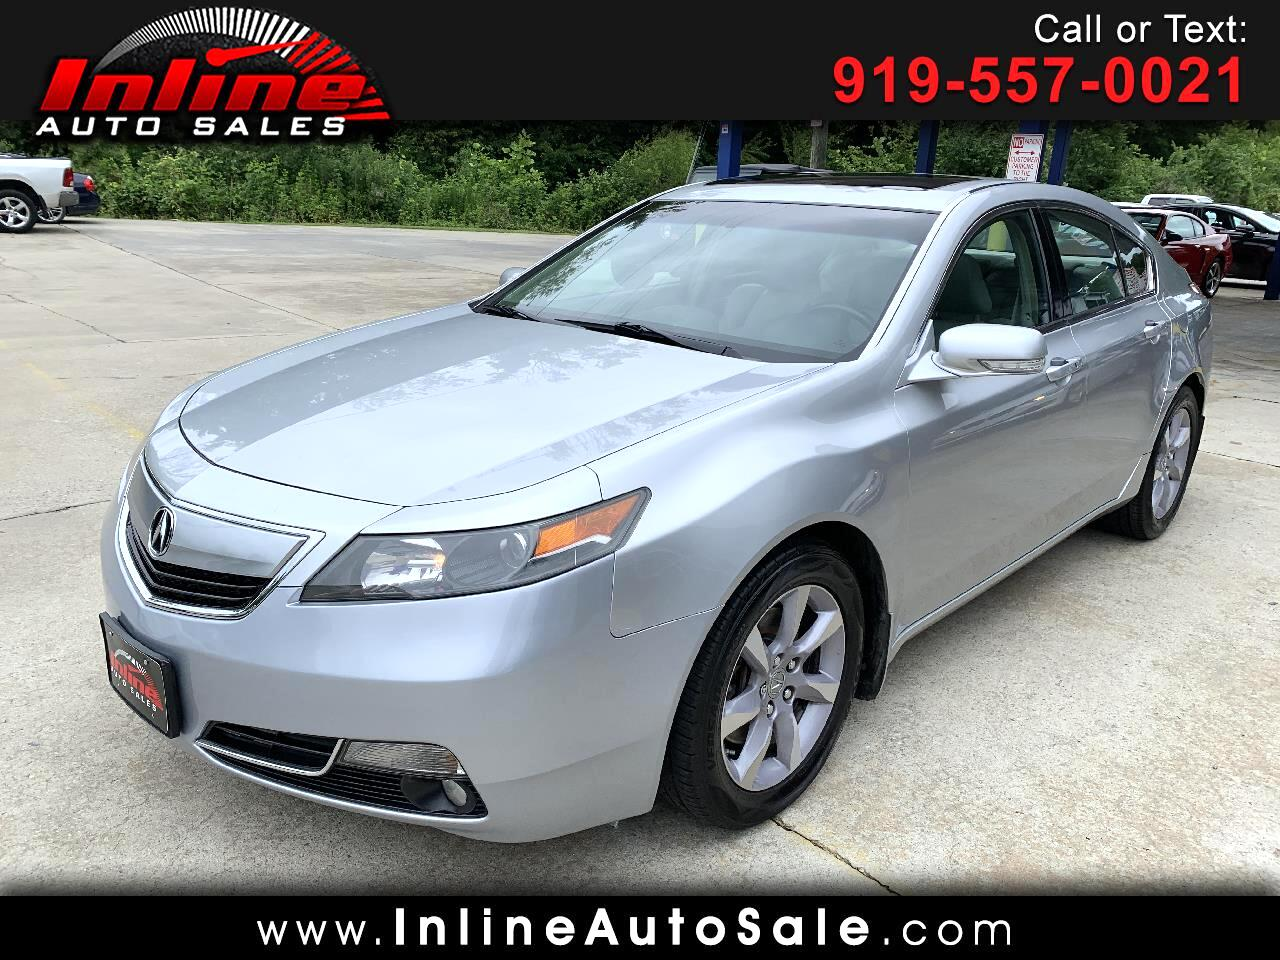 2013 Acura TL 3.2TL with Navigation System